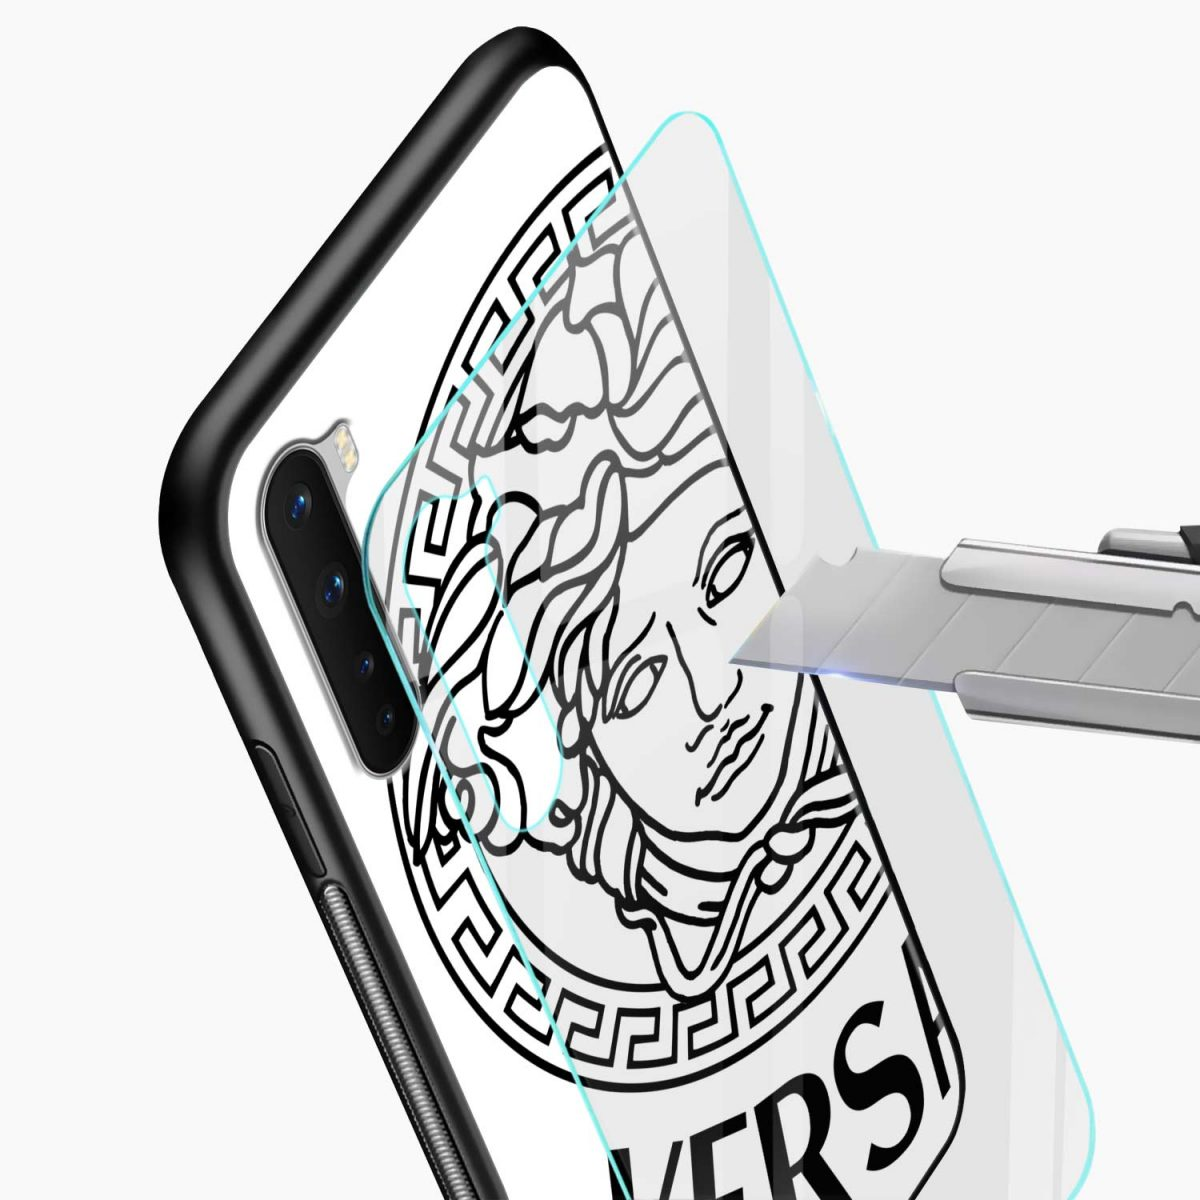 versace black white glass view oneplus nord back cover